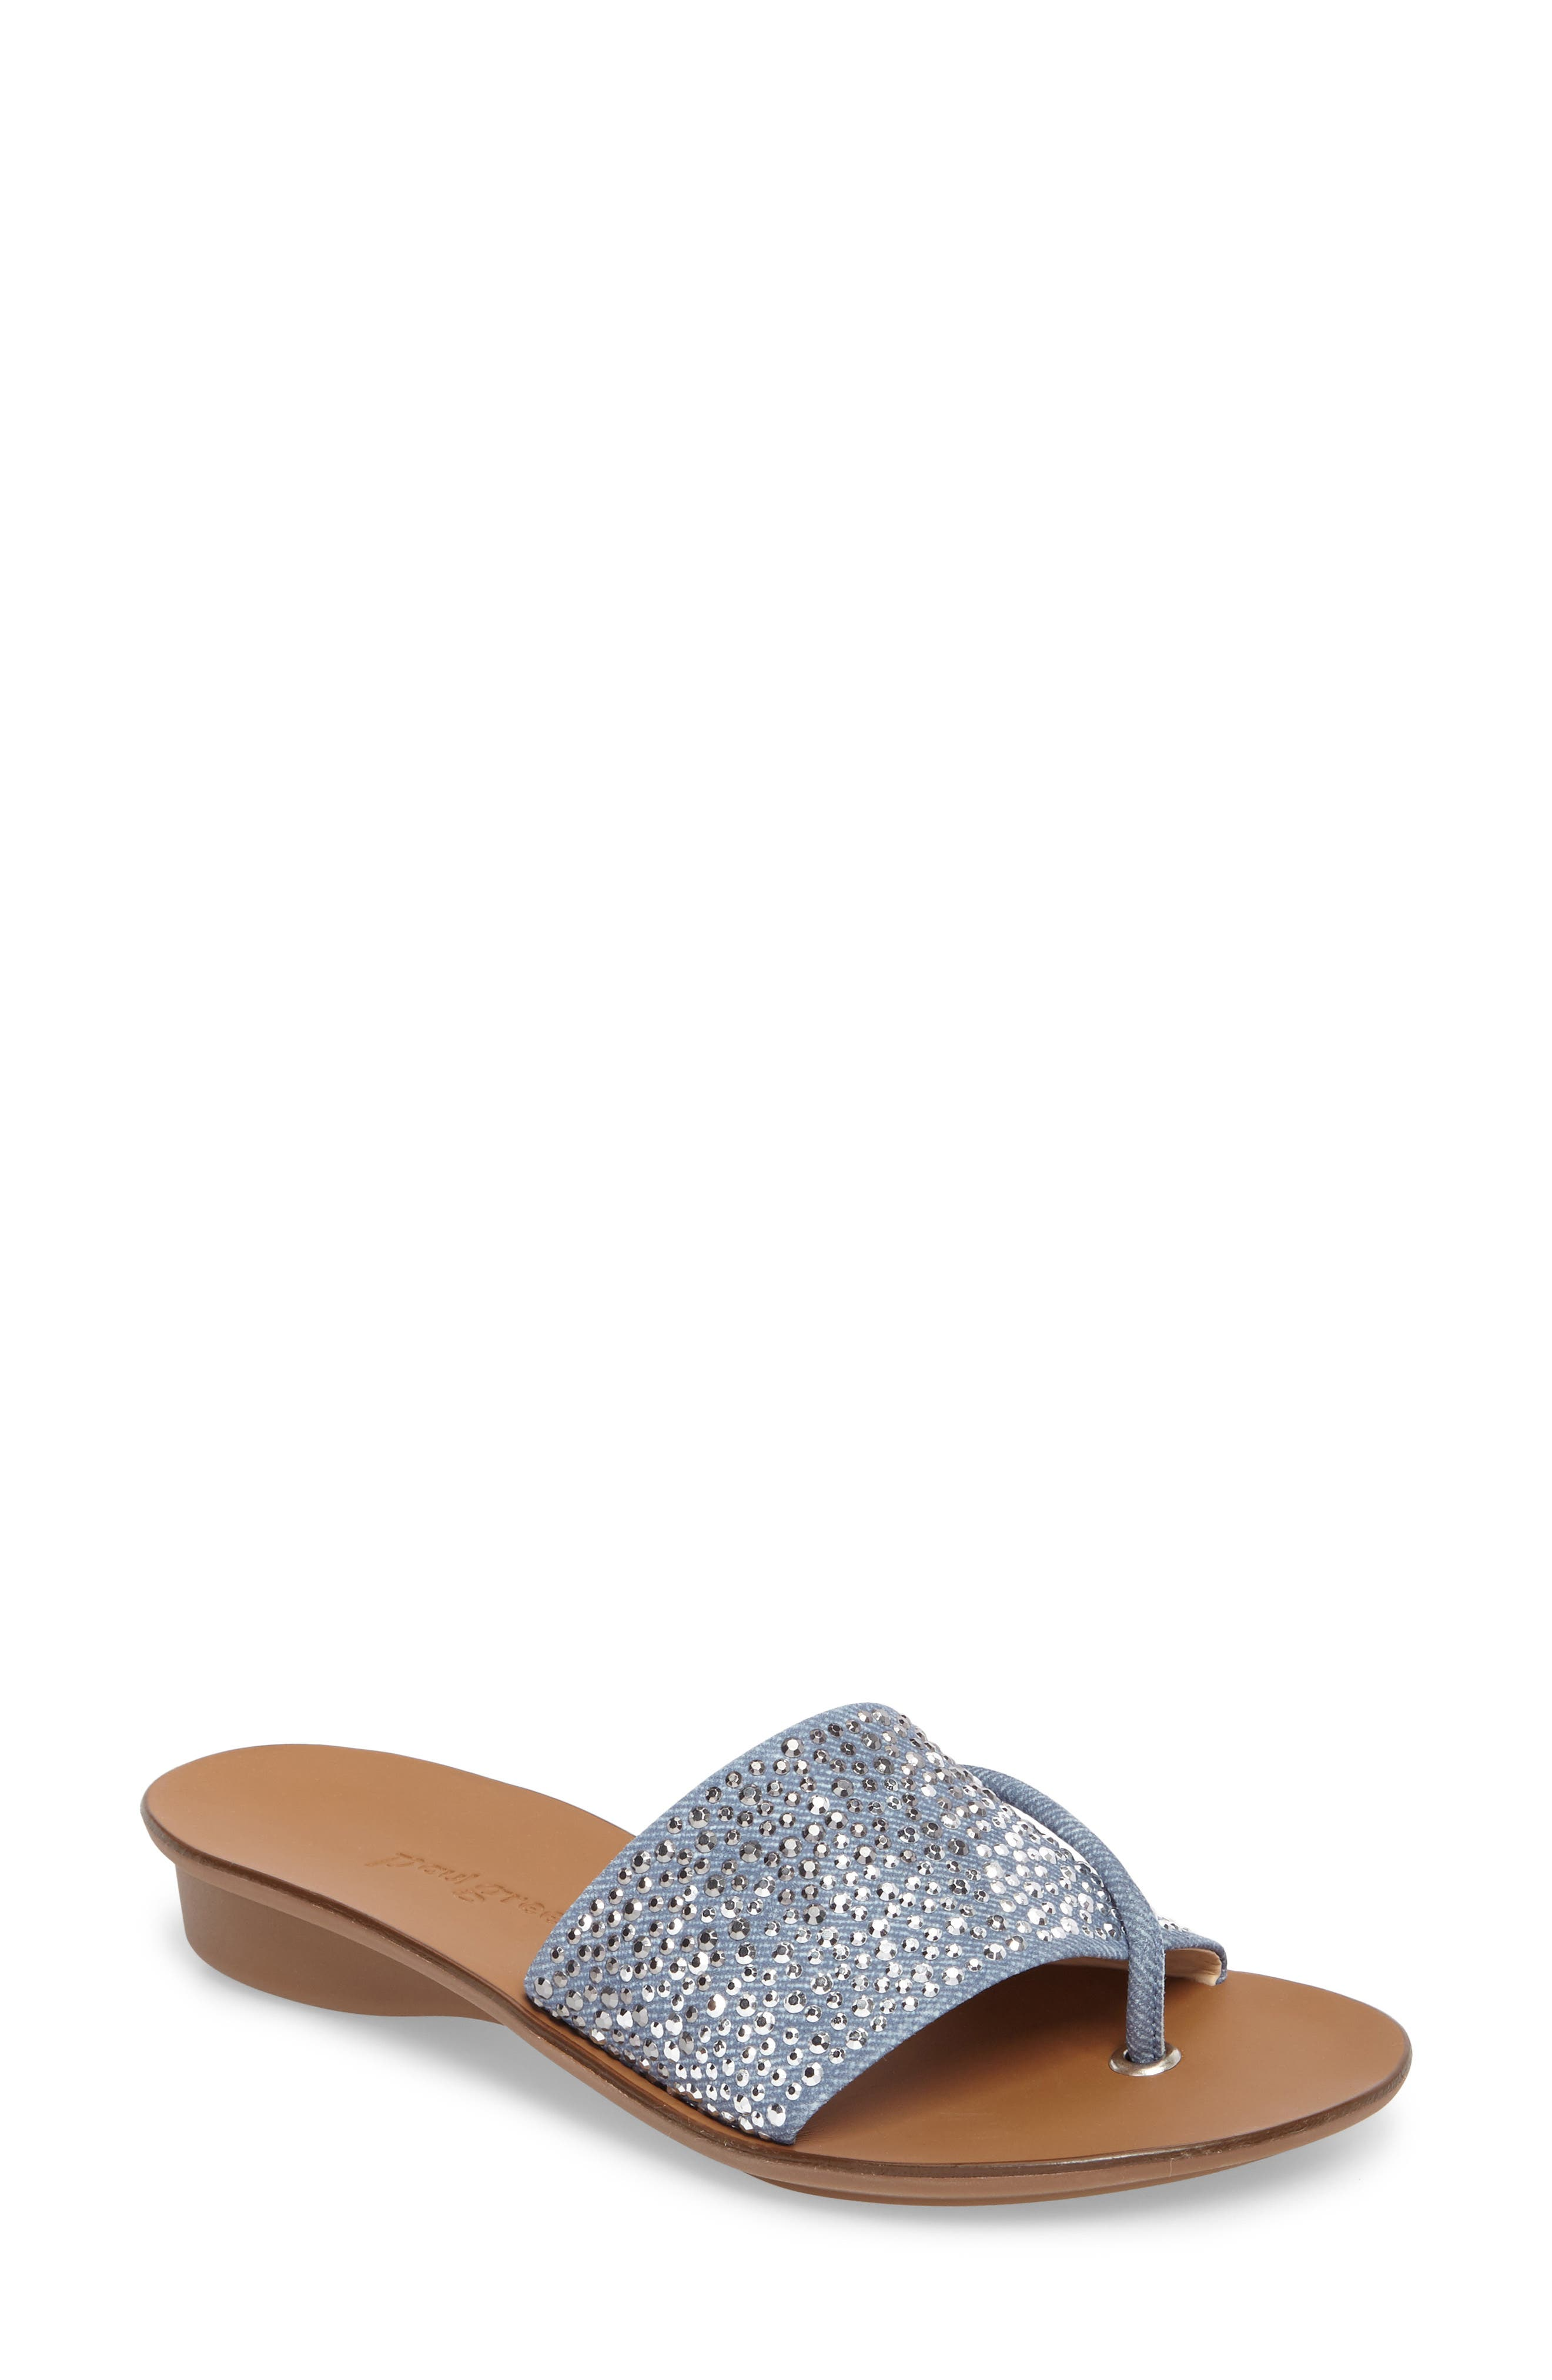 Paul Green Pixie Slide Sandal (Women)